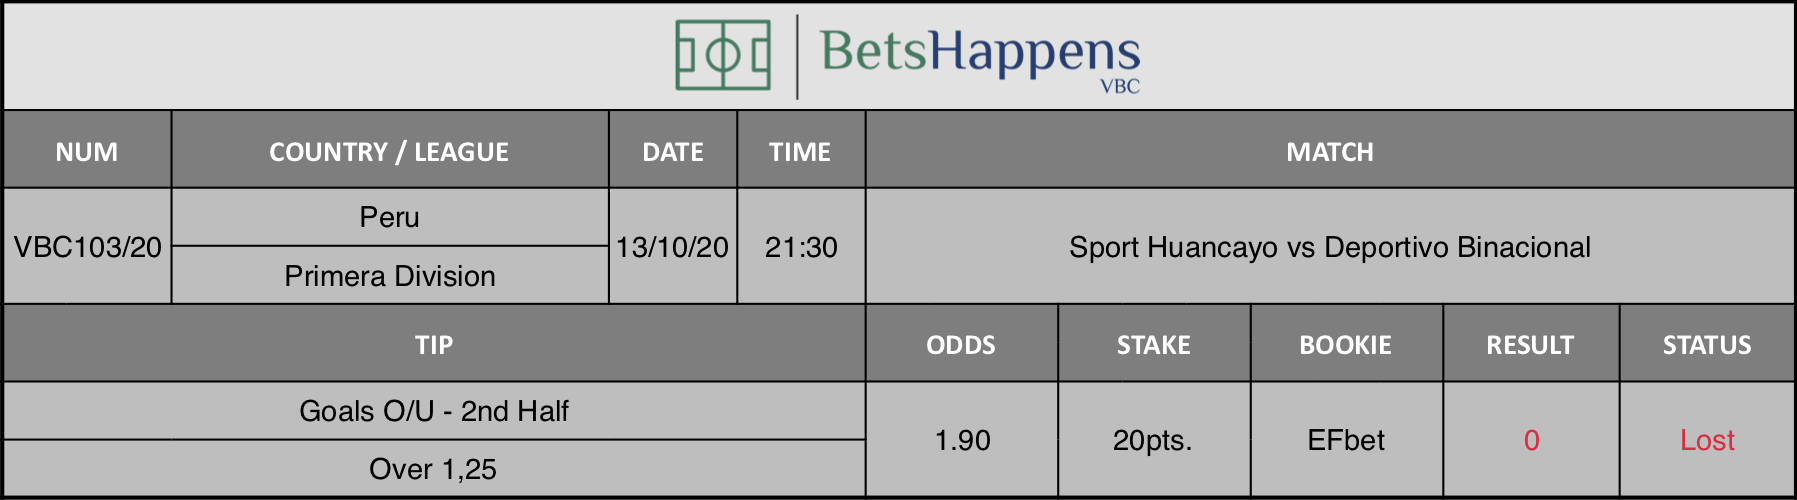 Results of our advice for the Sport Huancayo vs Deportivo Binacional match in which Goals O / U 2nd Half Over 1,25 is recommended.